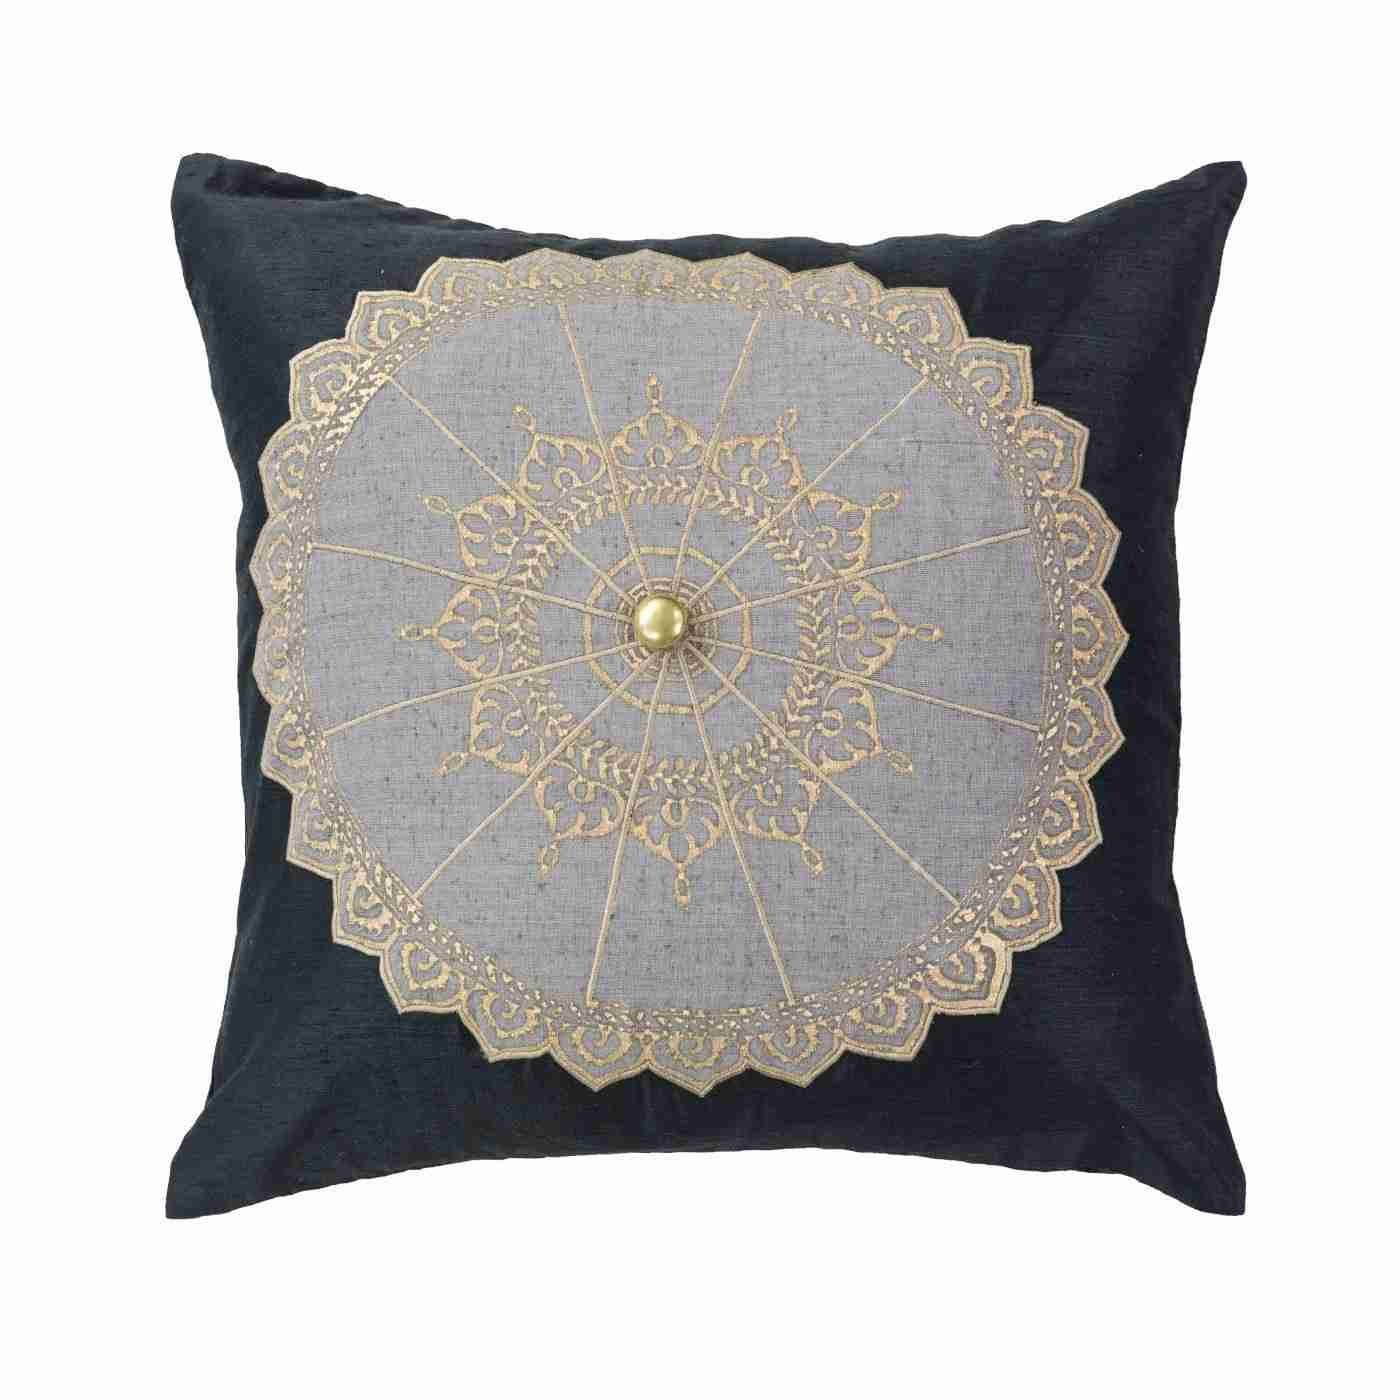 Bandhini Homewear Design Medium Cushion Earth Black / 18 x 18 Thai Umbrella Medium cushion 50 x 50 cm